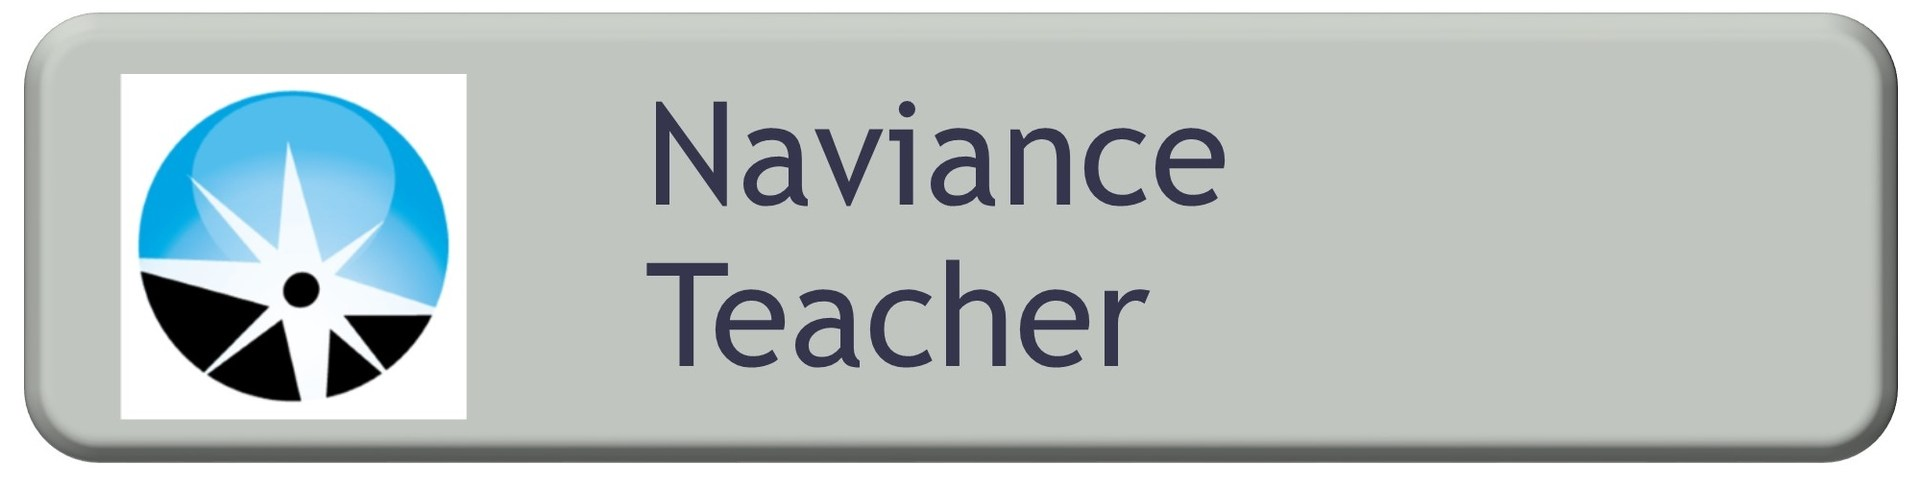 Naviance Teacher